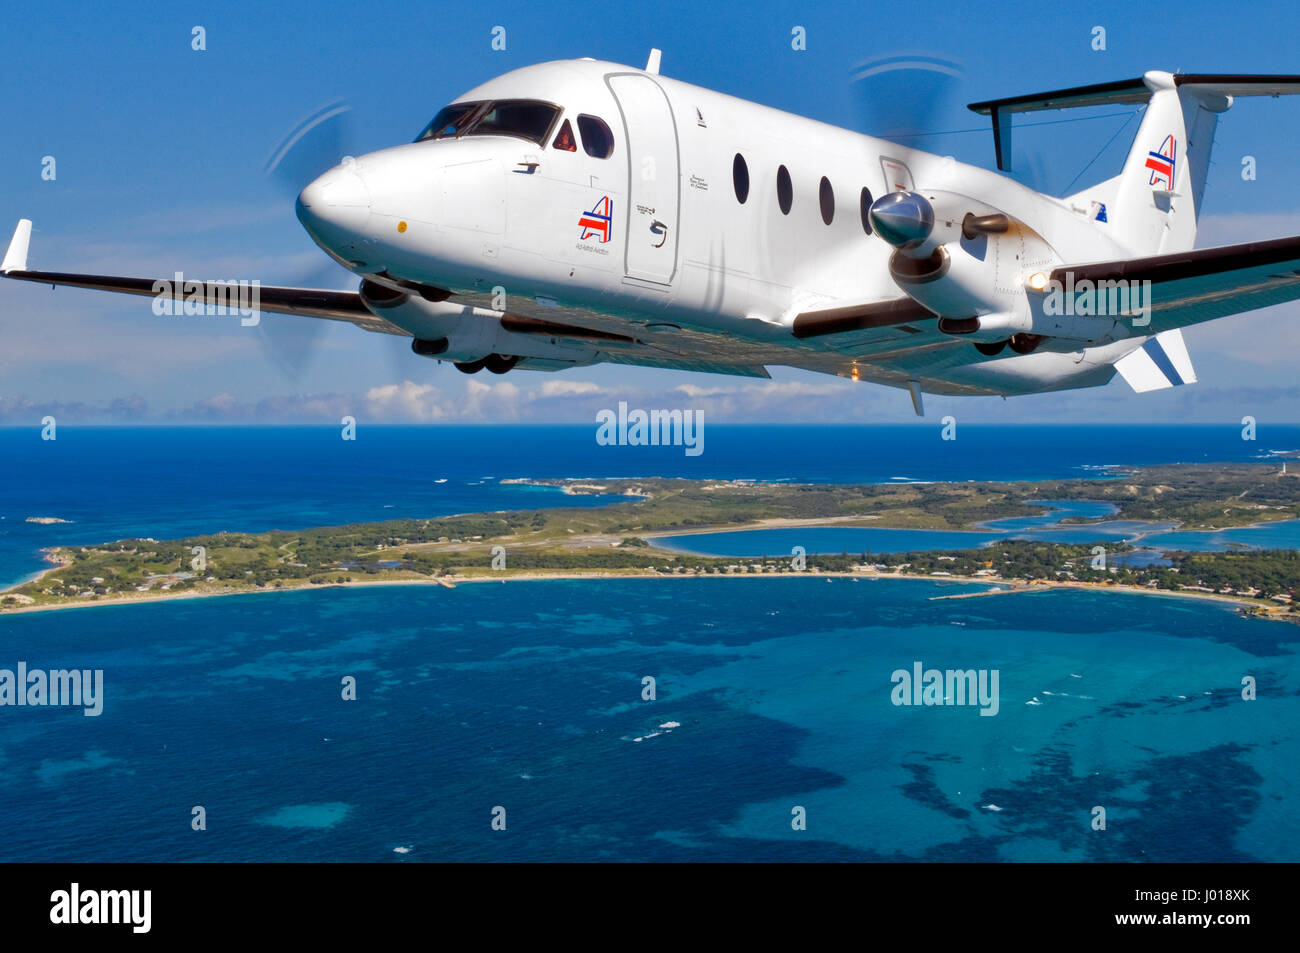 An aerial view of a Beechcraft B1900D short-haul / charter airliner leaving Rottnest Island, in Western Australia. - Stock Image